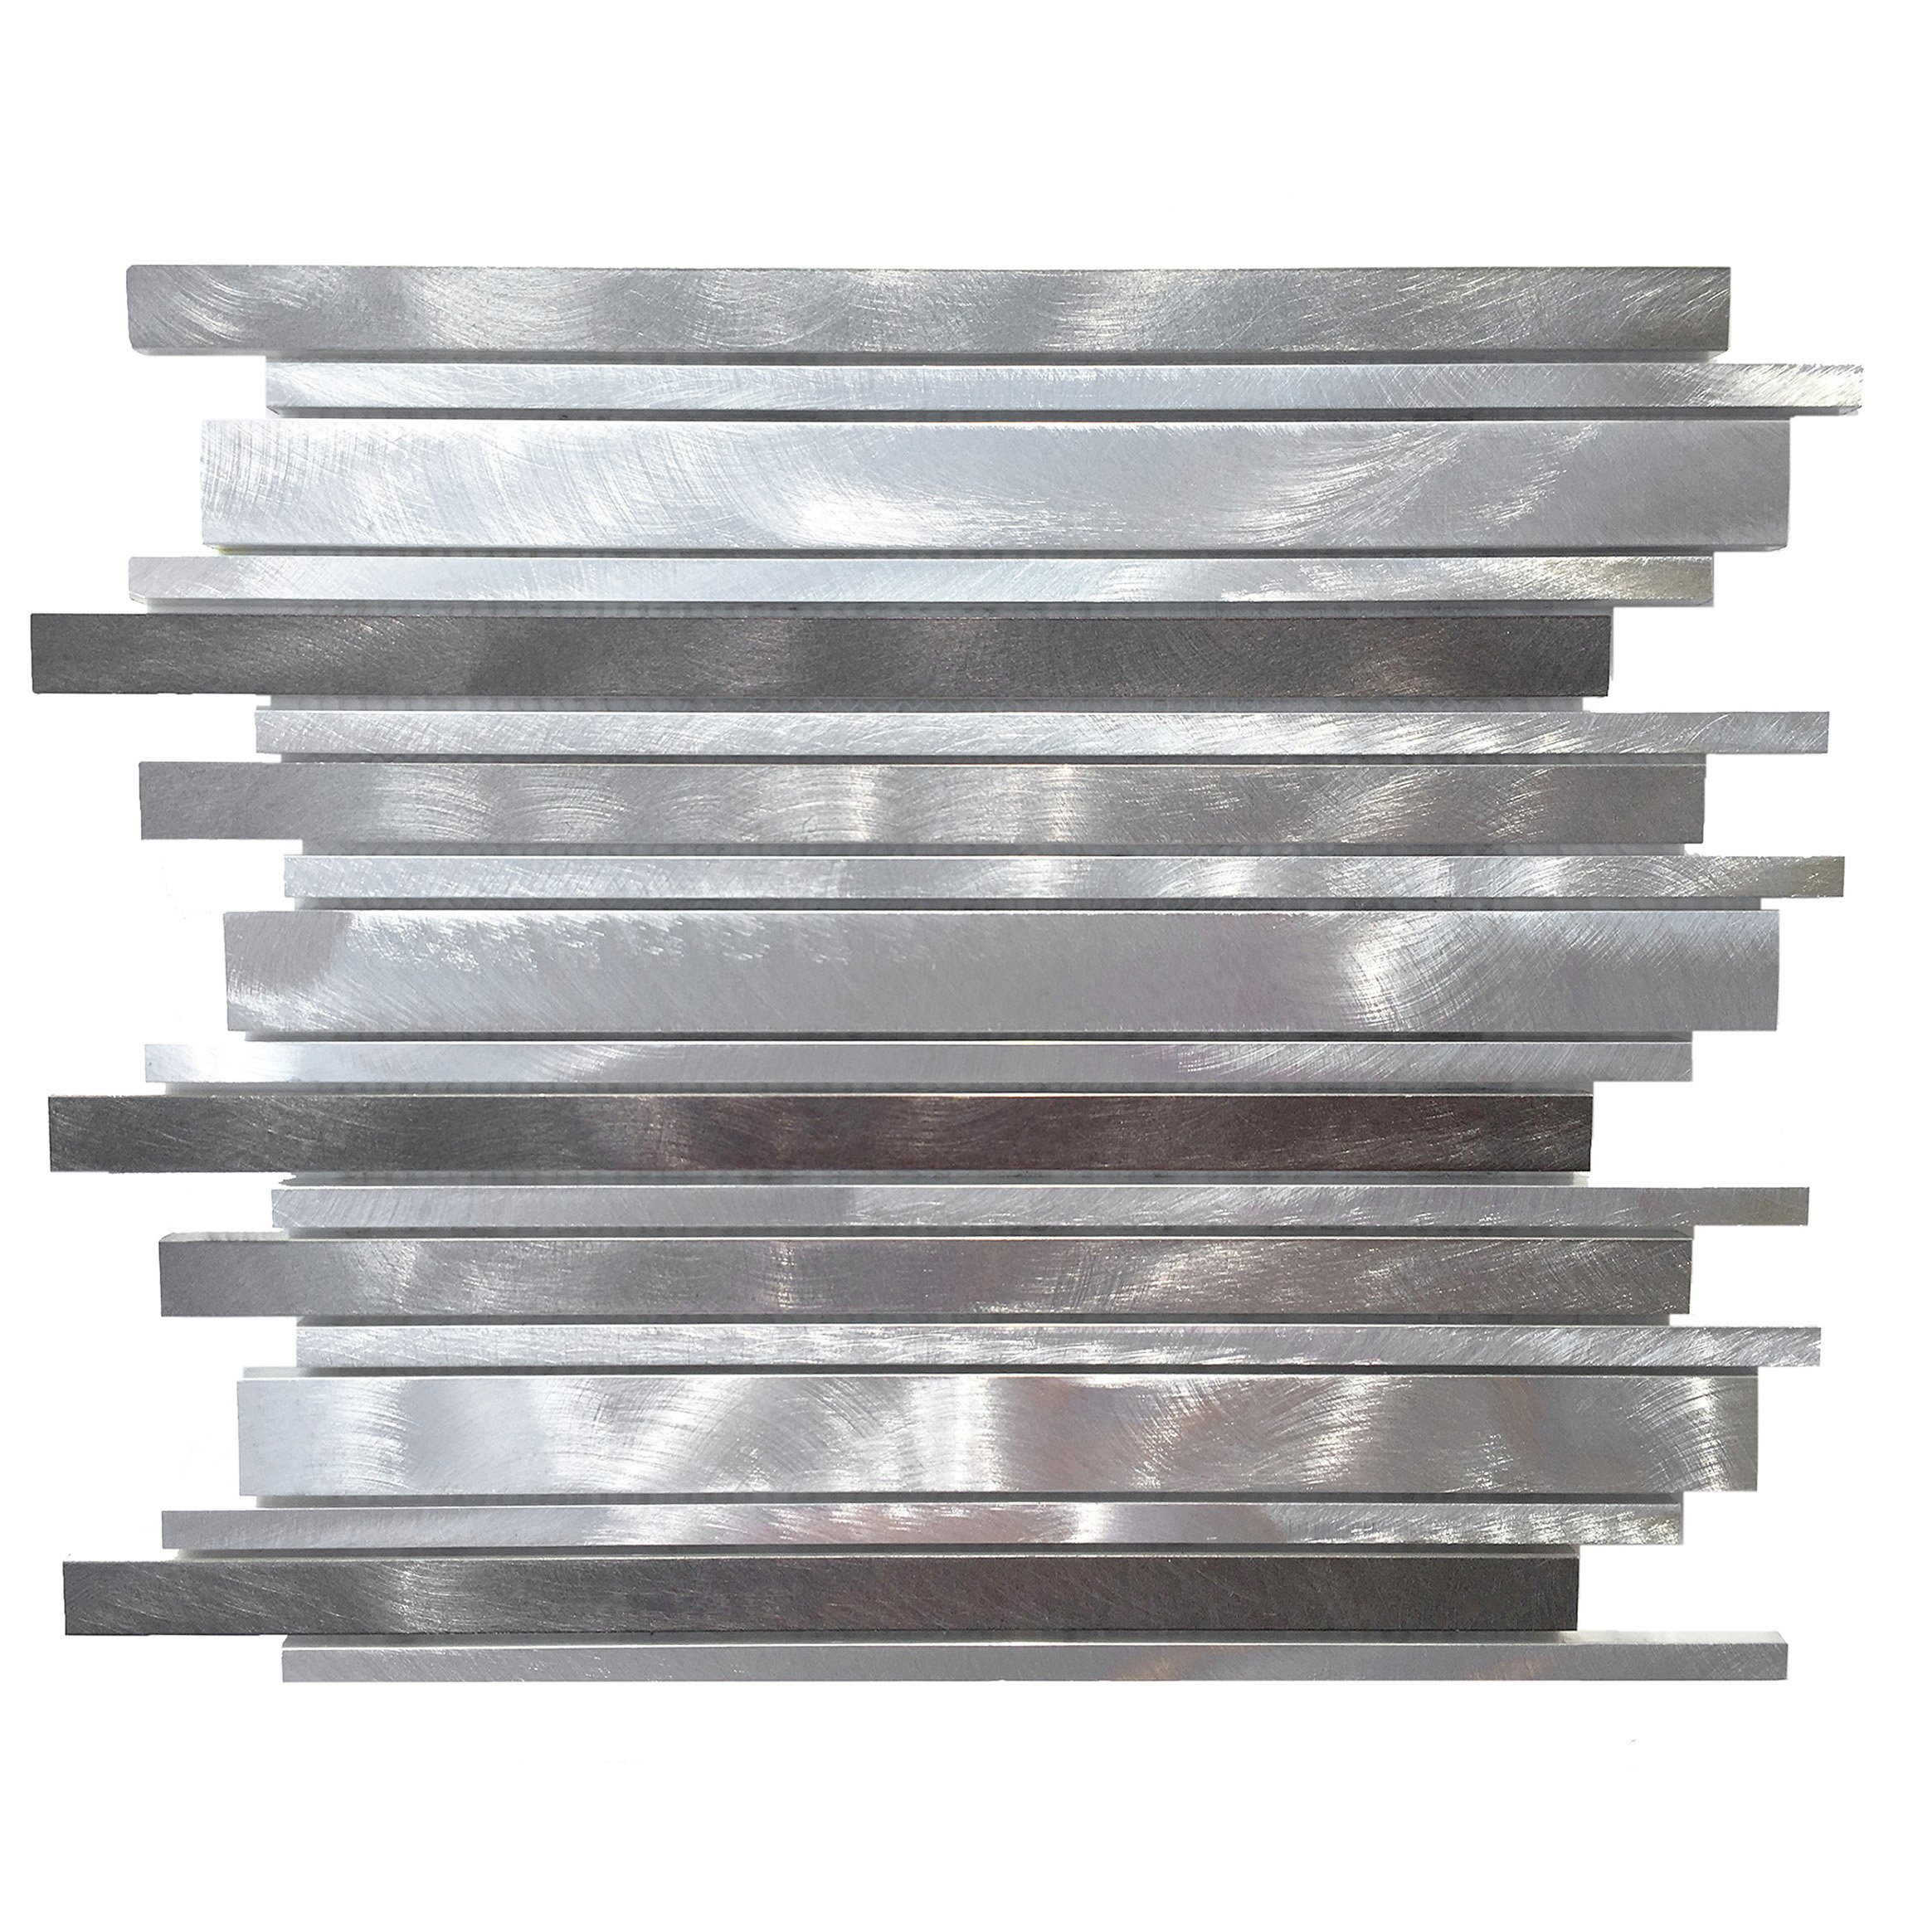 Silver and Pewter Long Random Bar Aluminum Tile - Kitchen Backsplash/Bath Backsplash/Wall Decor/Fireplace Surround